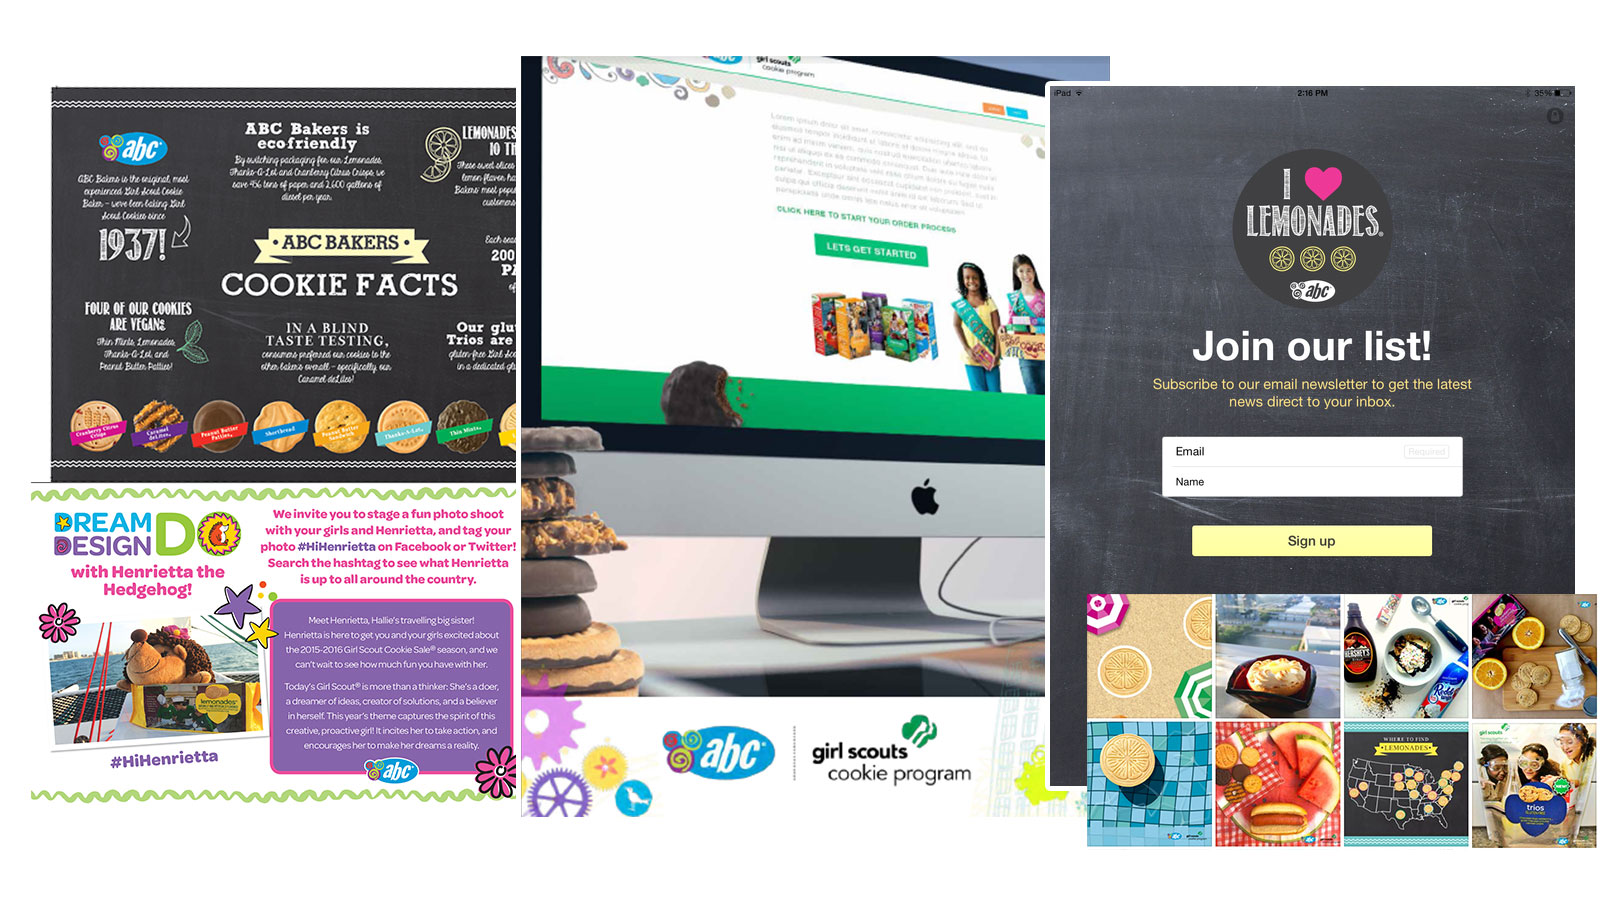 girl-scouts_CaseStudy_Image